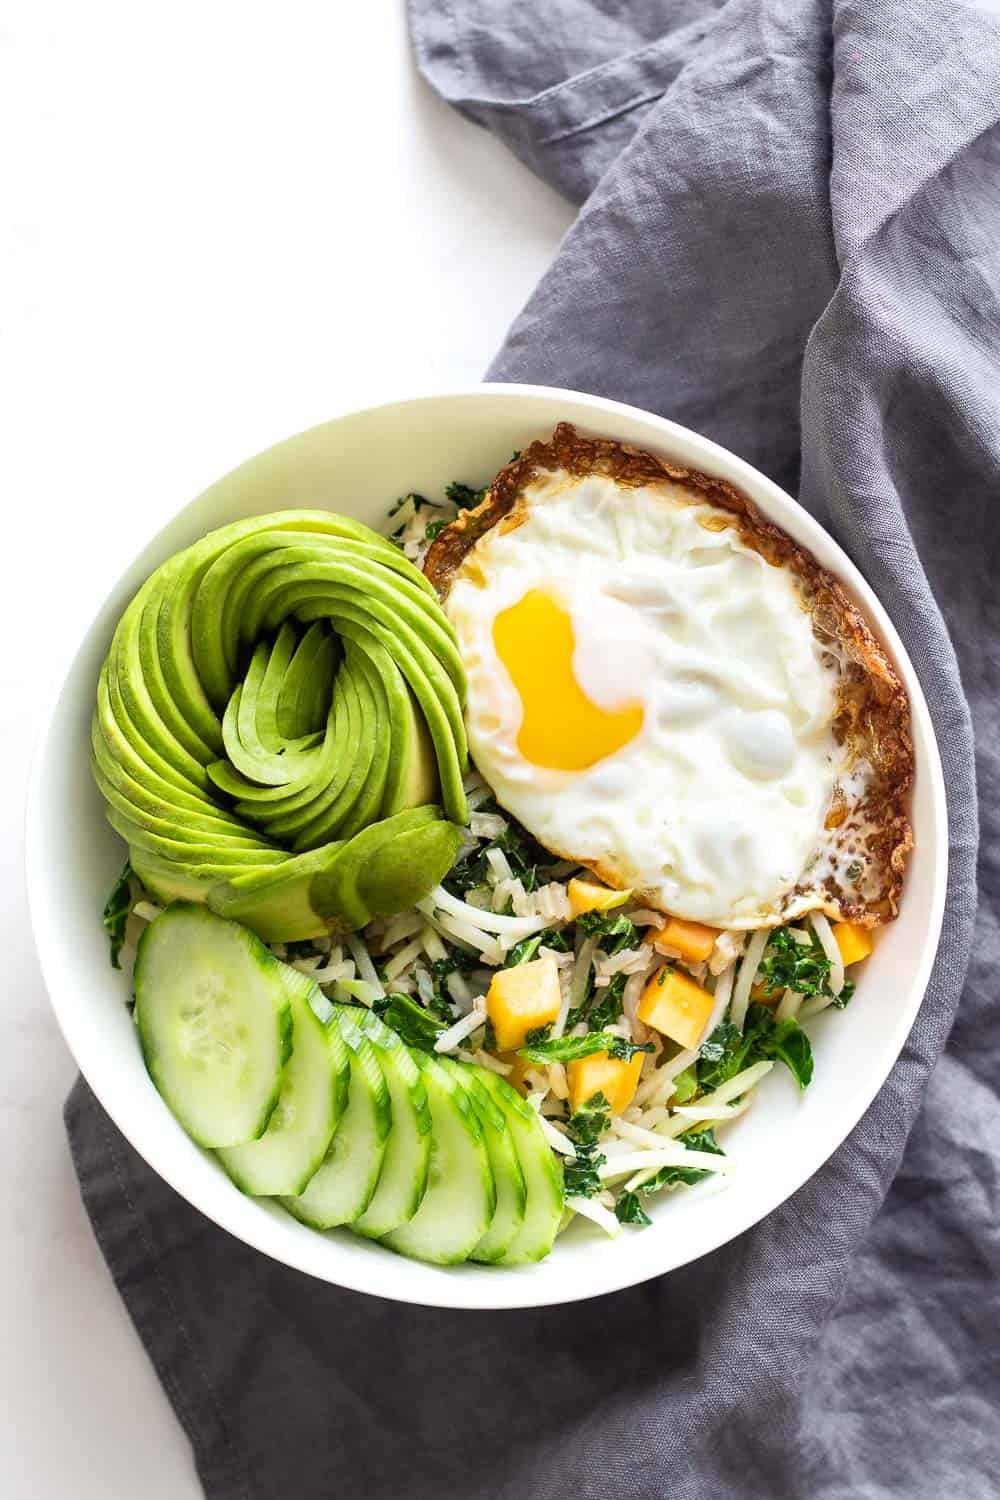 Thai Breakfast Bowl with kale, fried egg, avocado, cucumber